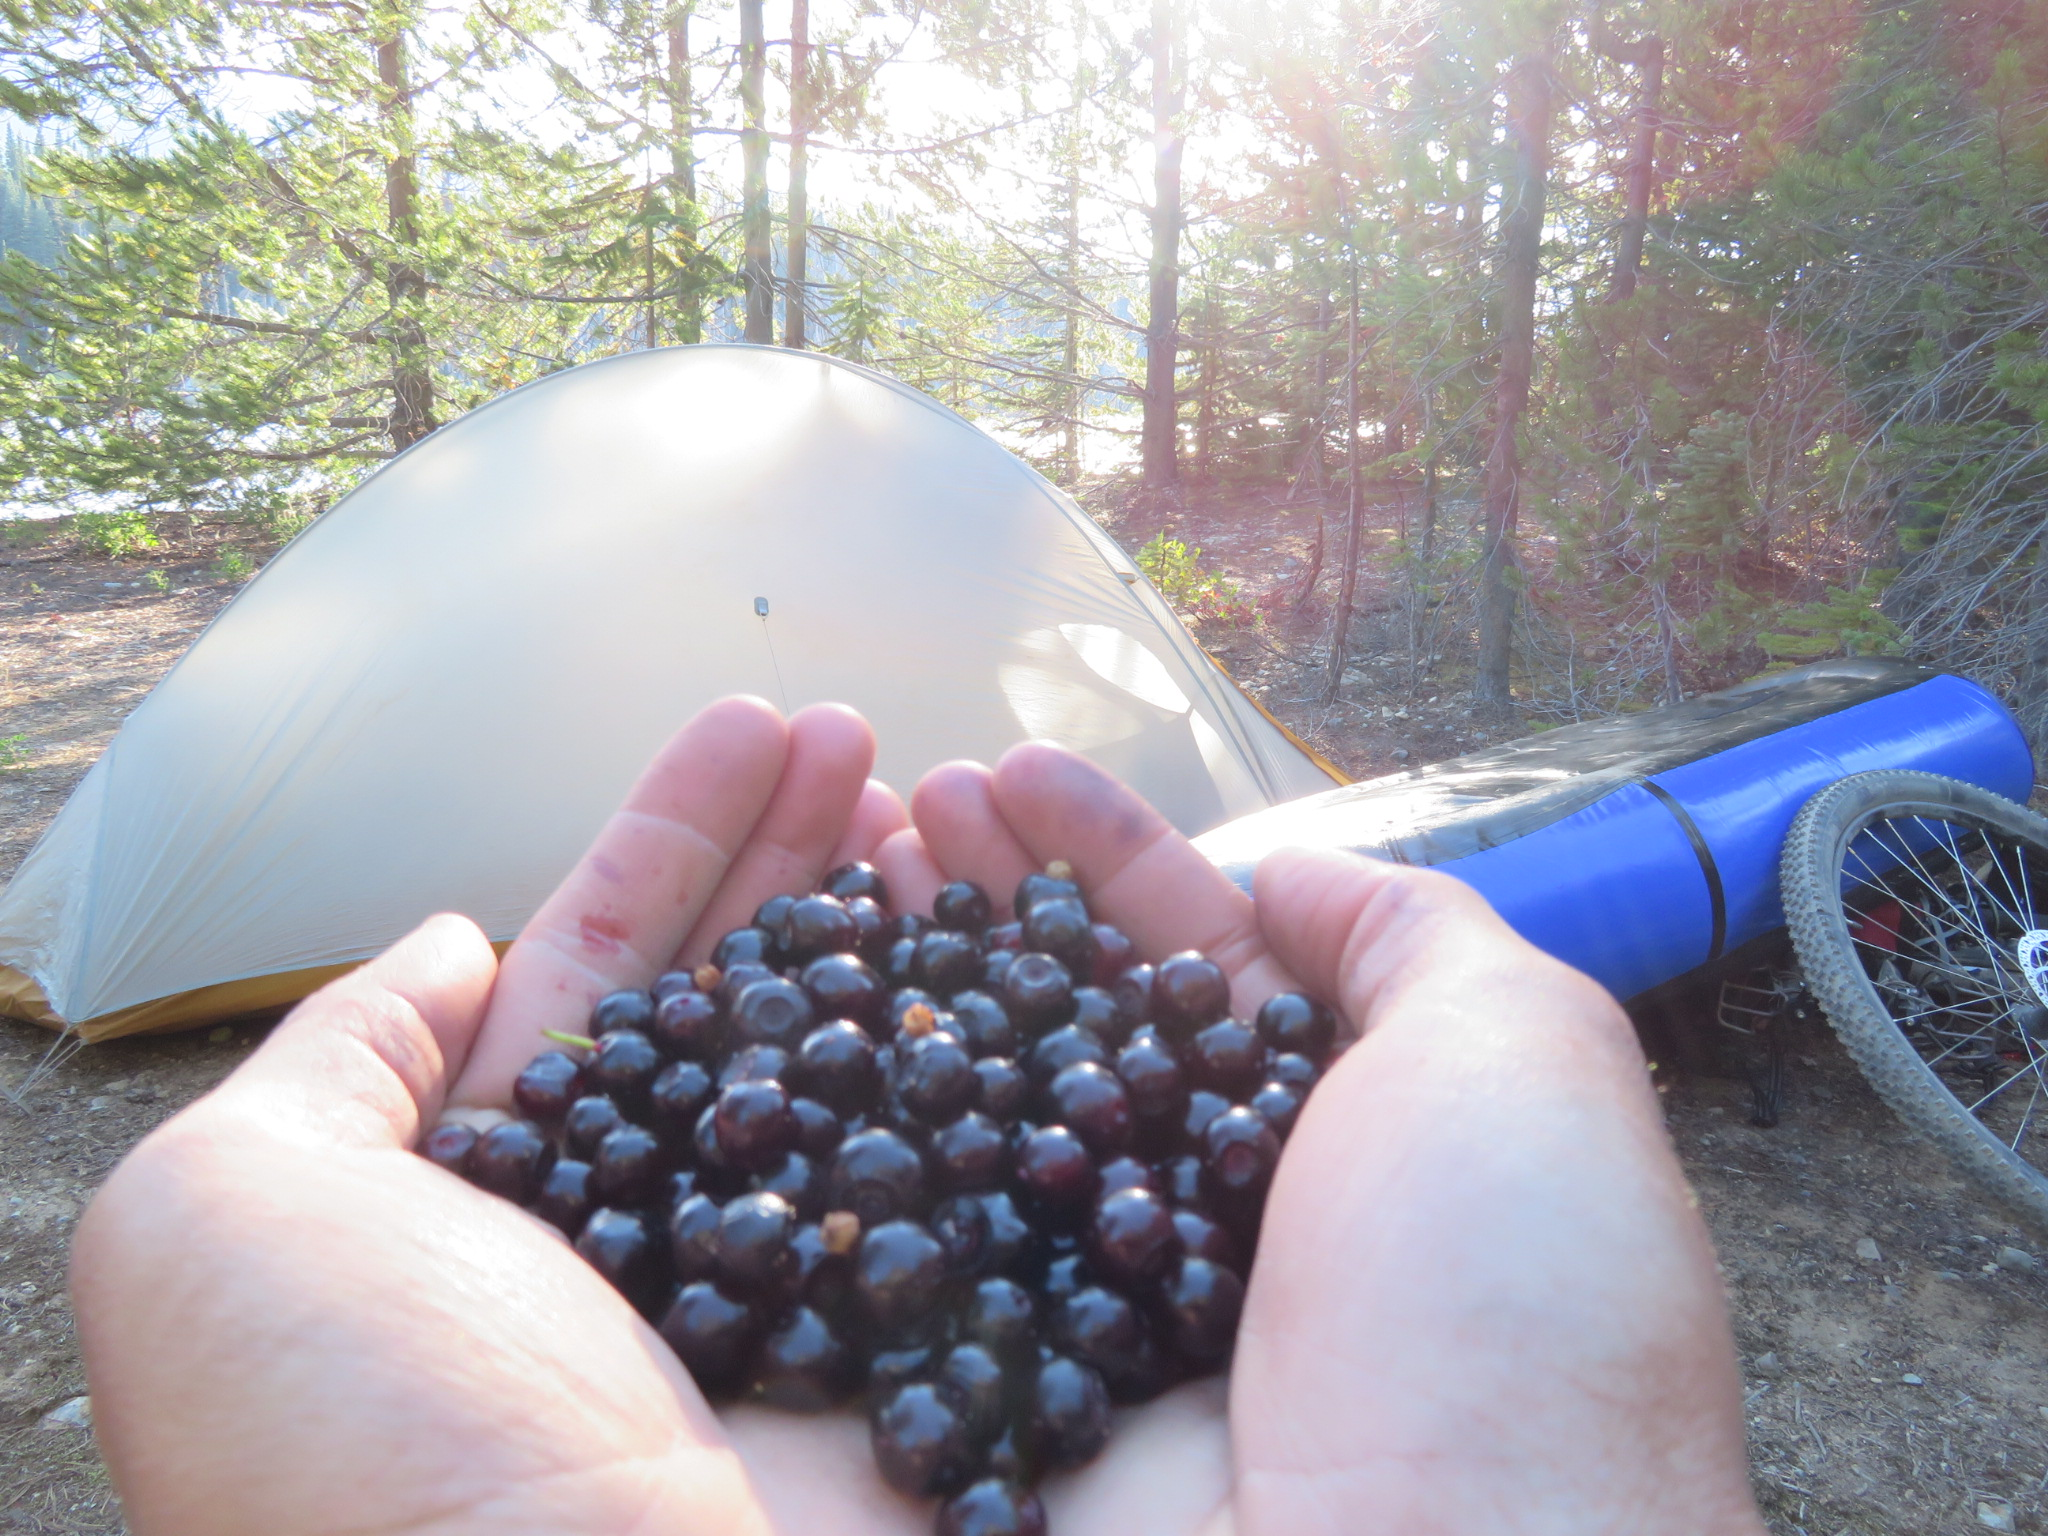 in a desperate move to keep my camp bear safe, I gathered as many huckleberries from the surrounding bushes as I could!